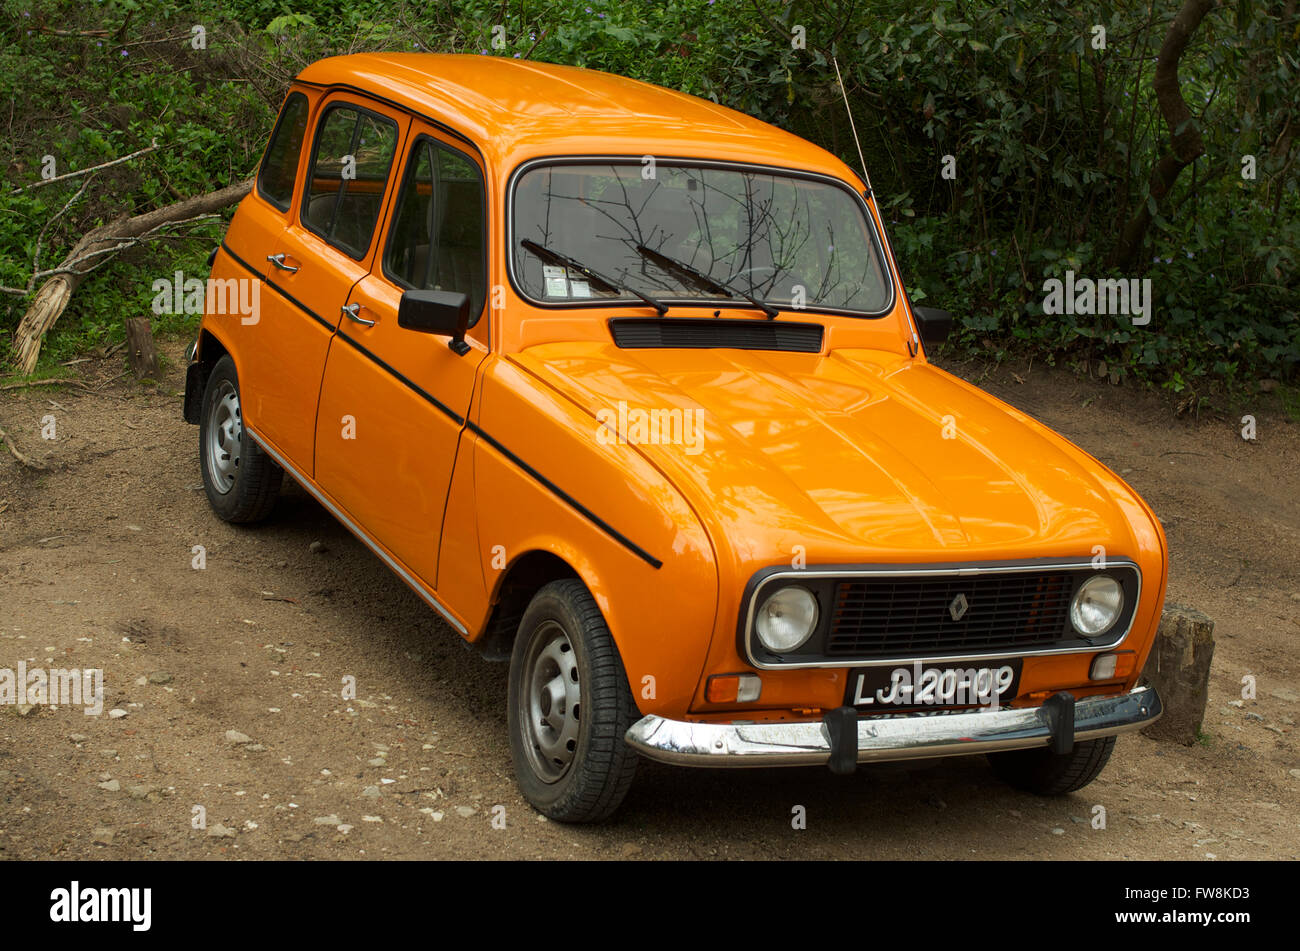 a classic orange renault 4 stock photo royalty free image 101609119 alamy. Black Bedroom Furniture Sets. Home Design Ideas